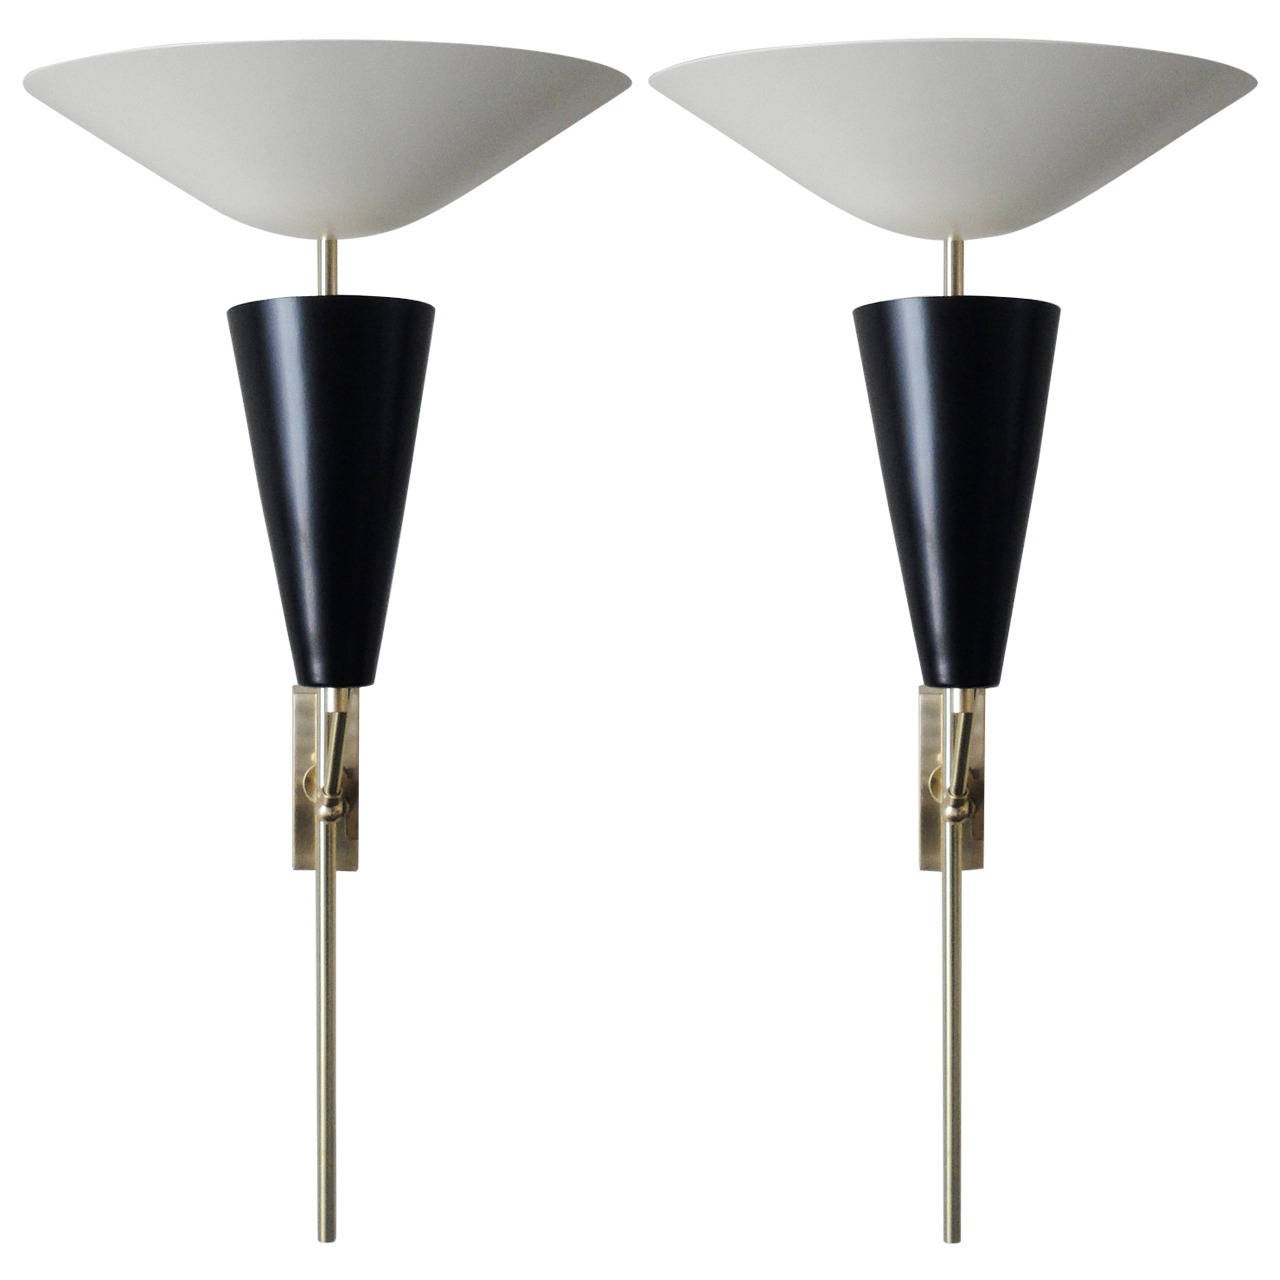 Double Shade Wall Sconces : Pair of Double Shade Sconces For Sale at 1stdibs